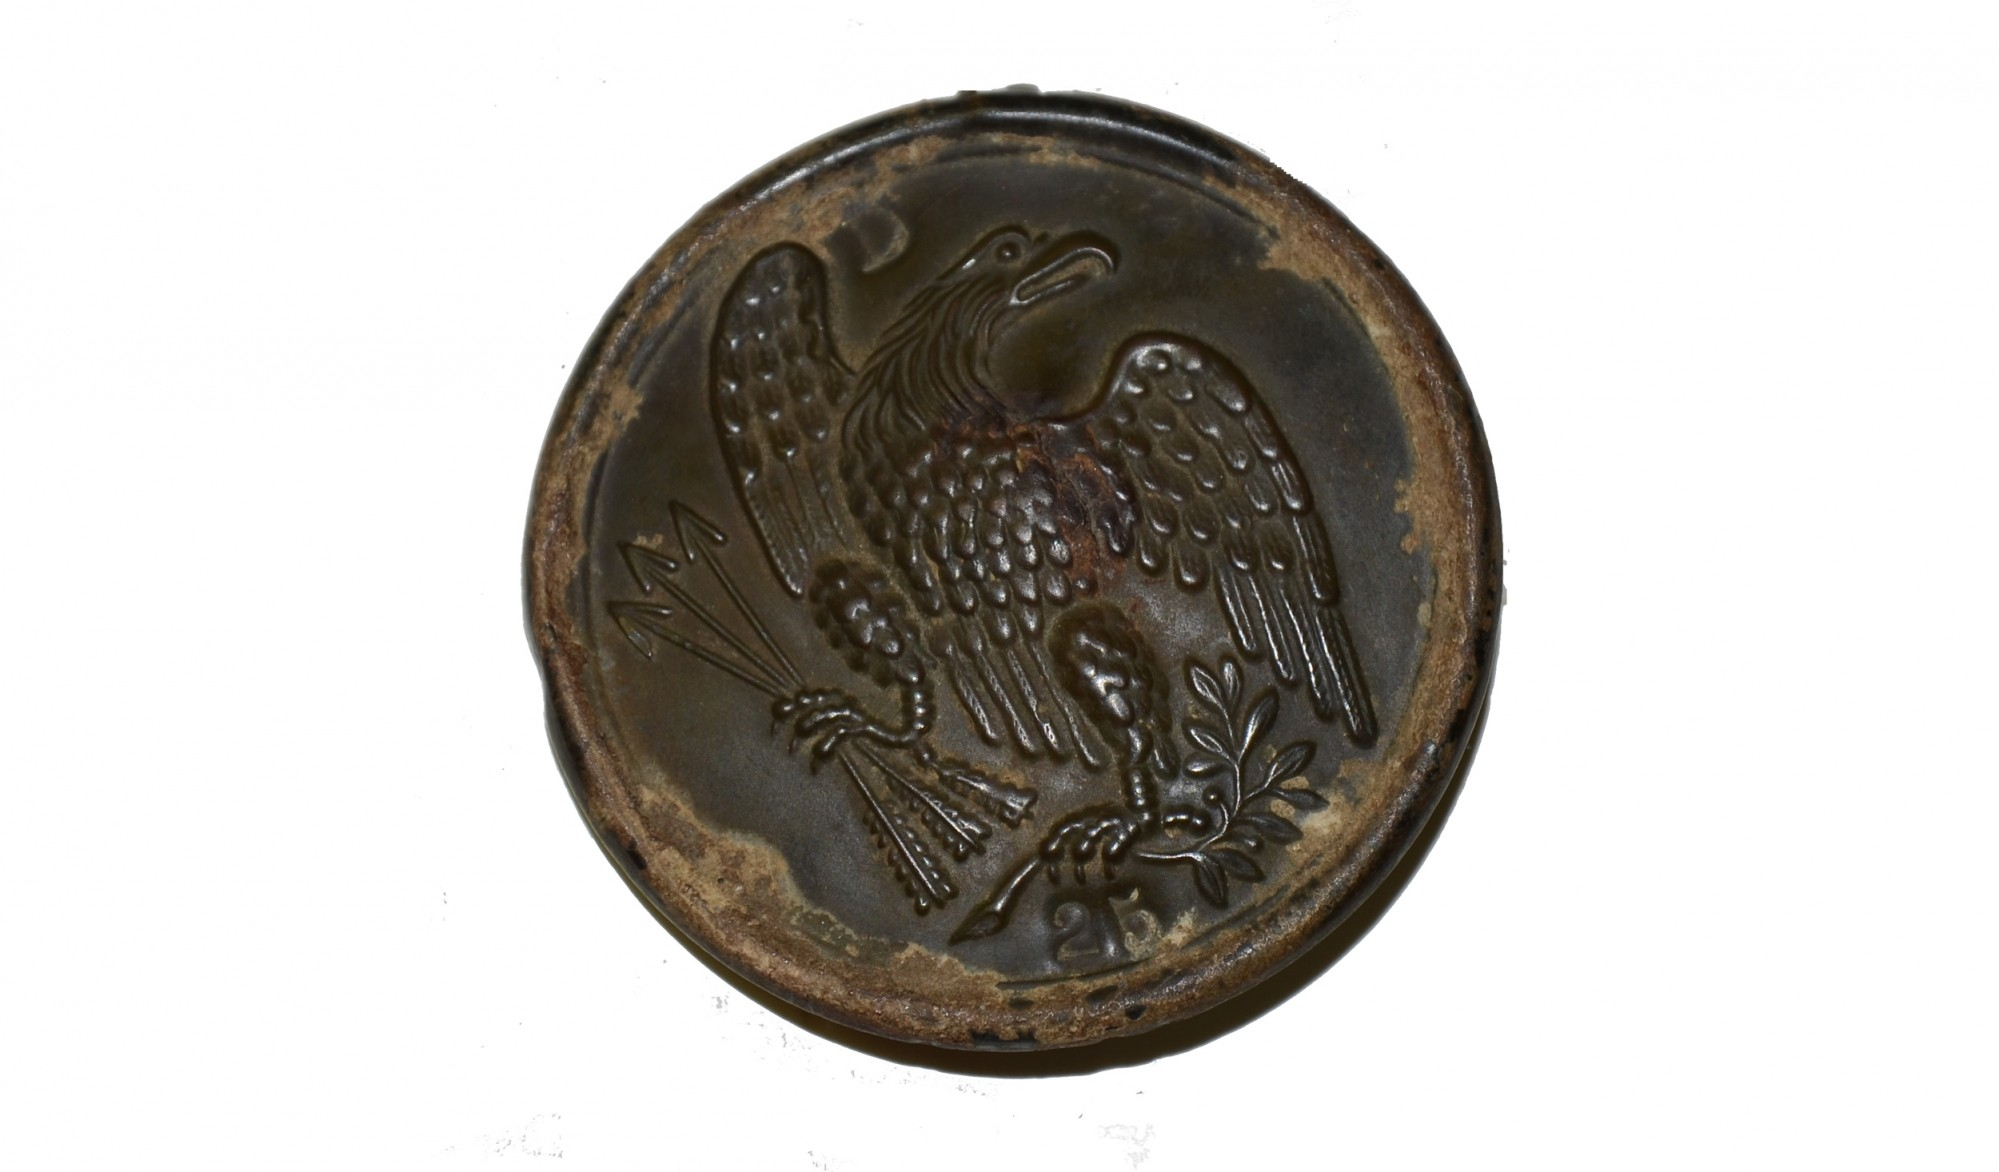 PATTERN 1826 EAGLE BREAST PLATE WITH MARKINGS